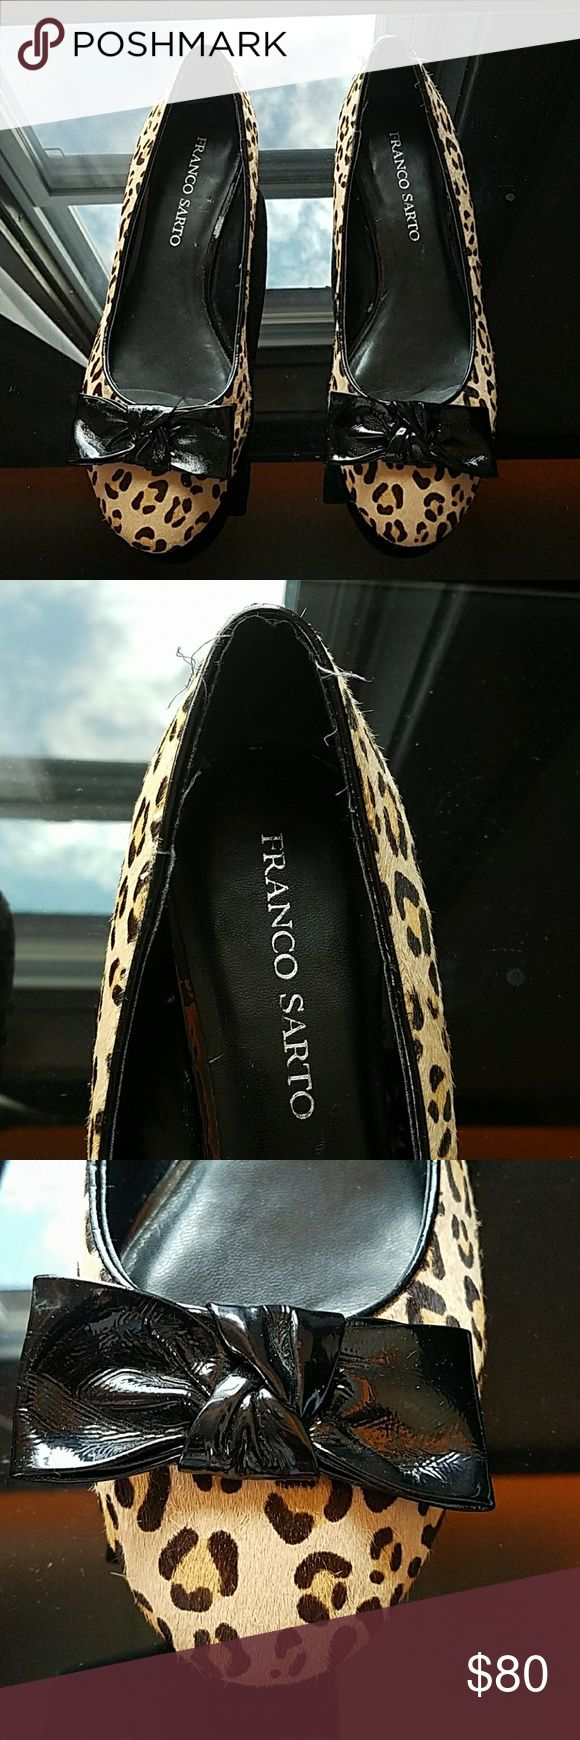 Franco Sarto cheetah heeled flats Franco Sarto cheetah heeled flats with like real animal fur not sure if real.  With the use size in inside was erased. I think they're a size 9-9.5. Narrow shoes. In great condition only flaw is a bit of strings out on left shoe refer to second picture.   Very chic shoes. Such a steal for the prize, pre loved! Franco Sarto Shoes Flats & Loafers